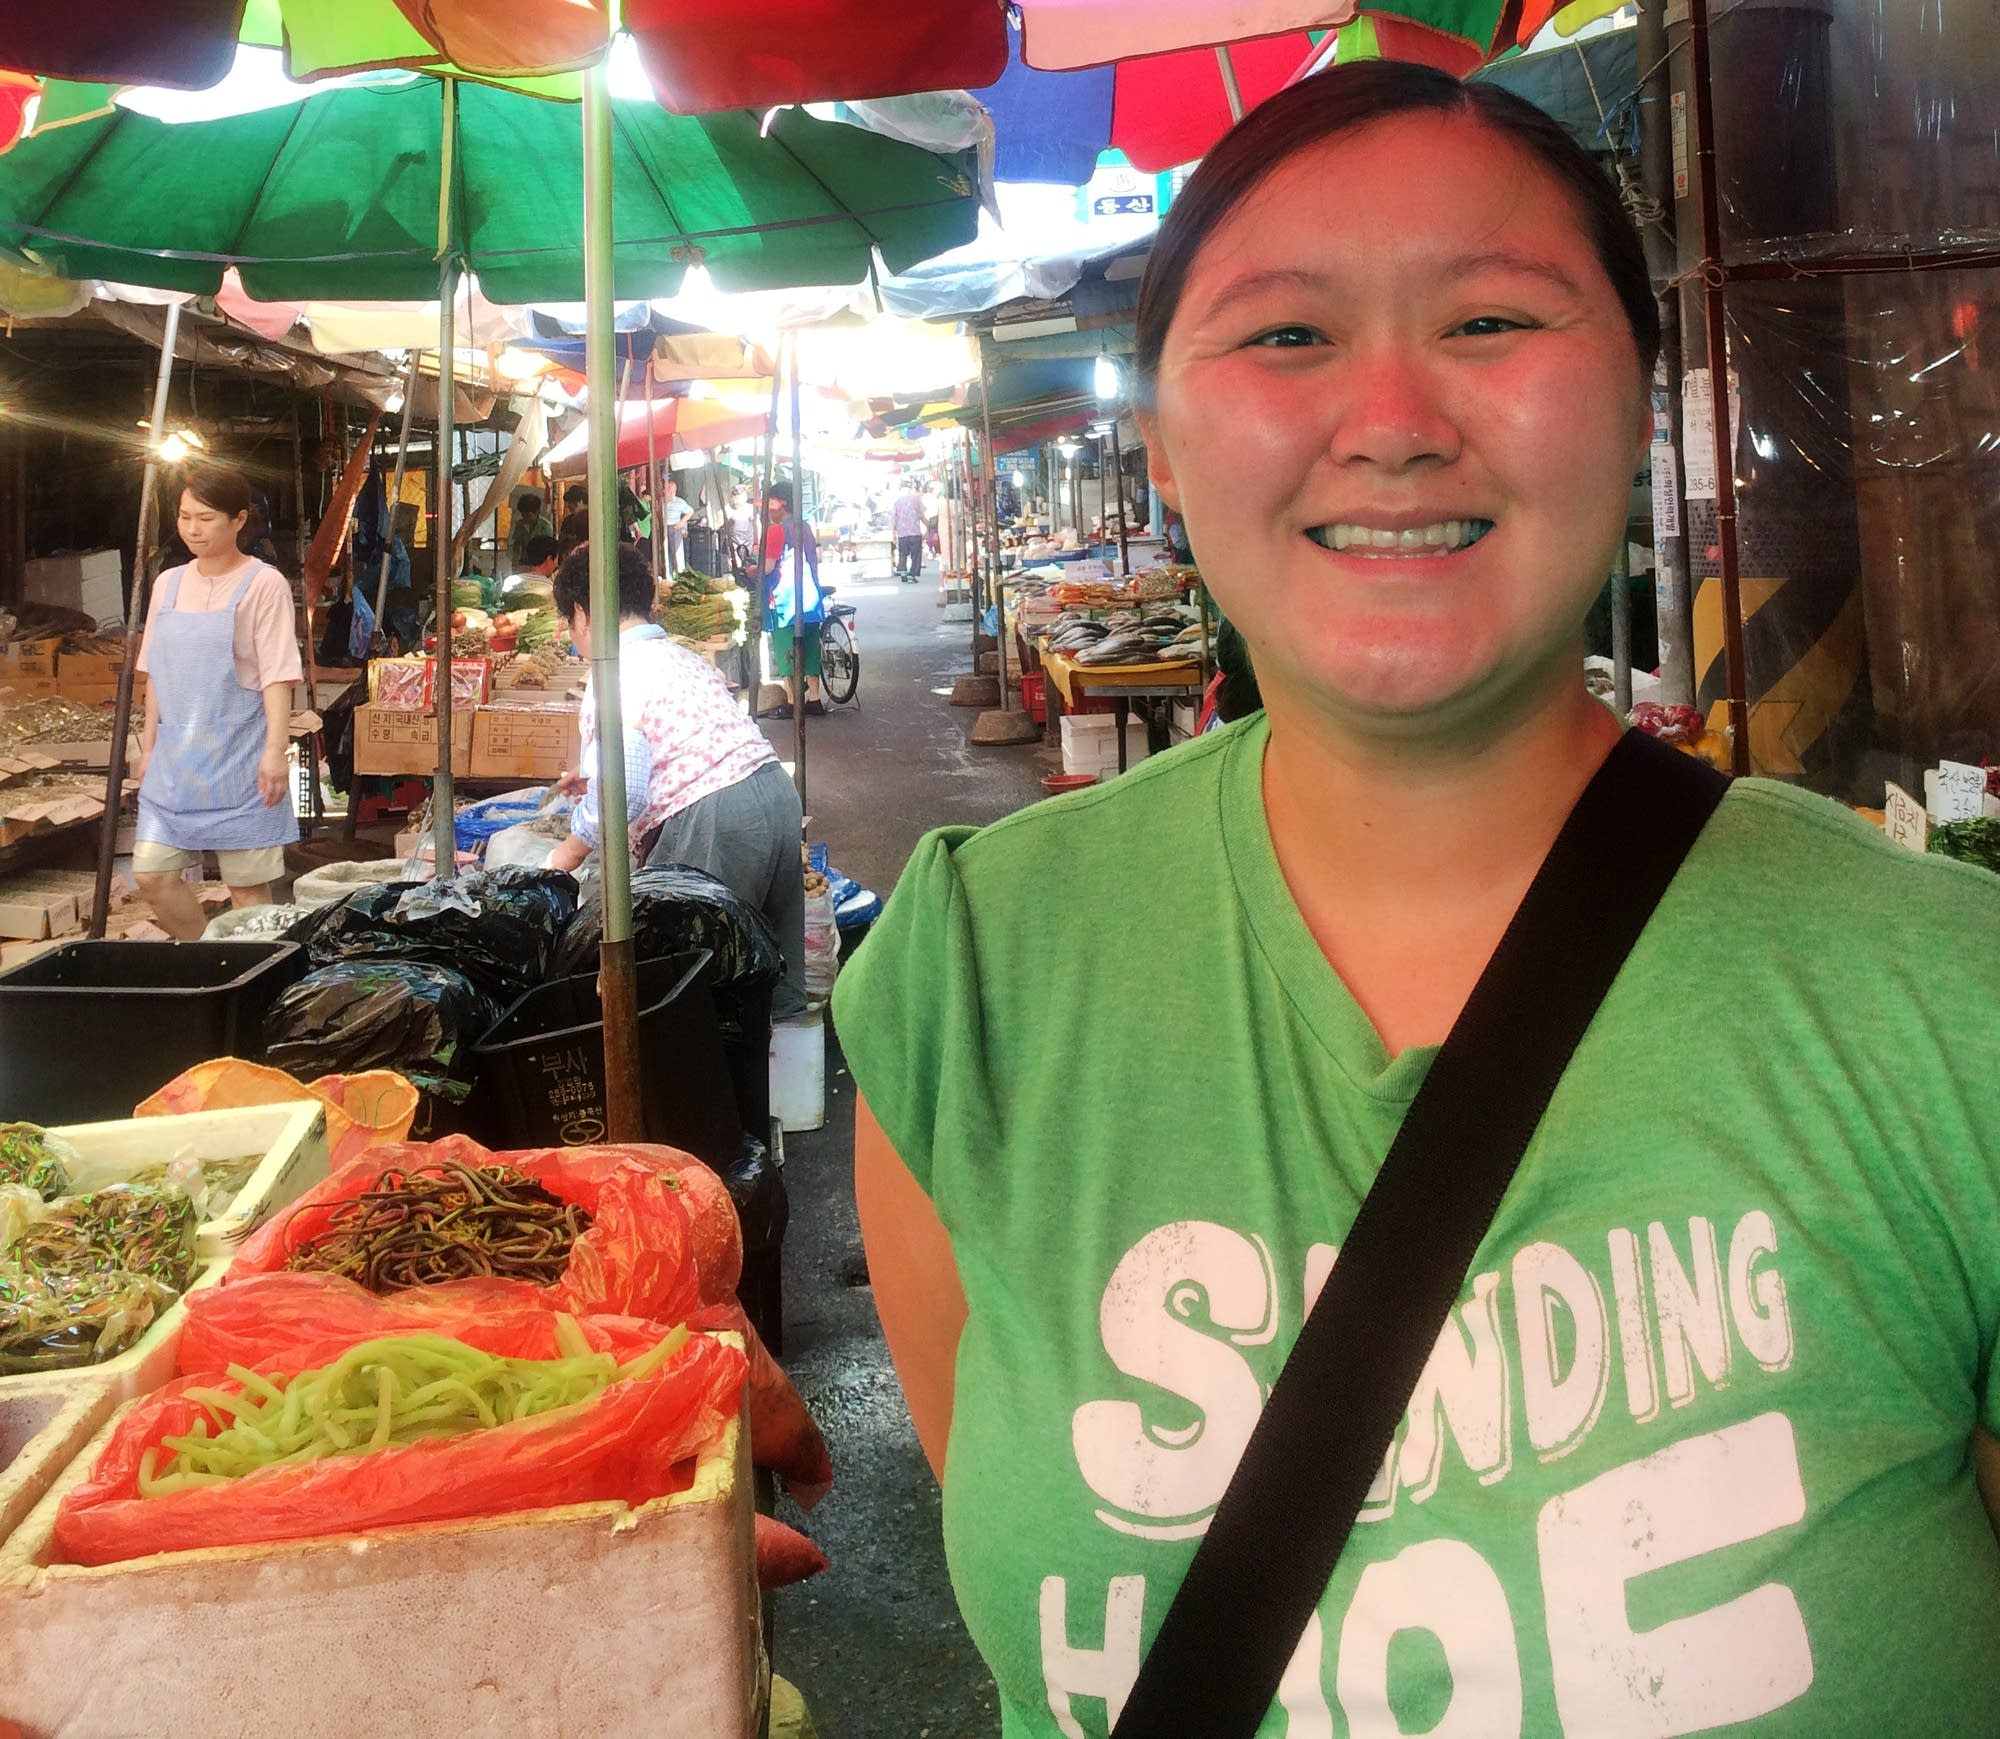 Megan Arnesen, of Plymouth, Minn., visited a busy market in Daejeon